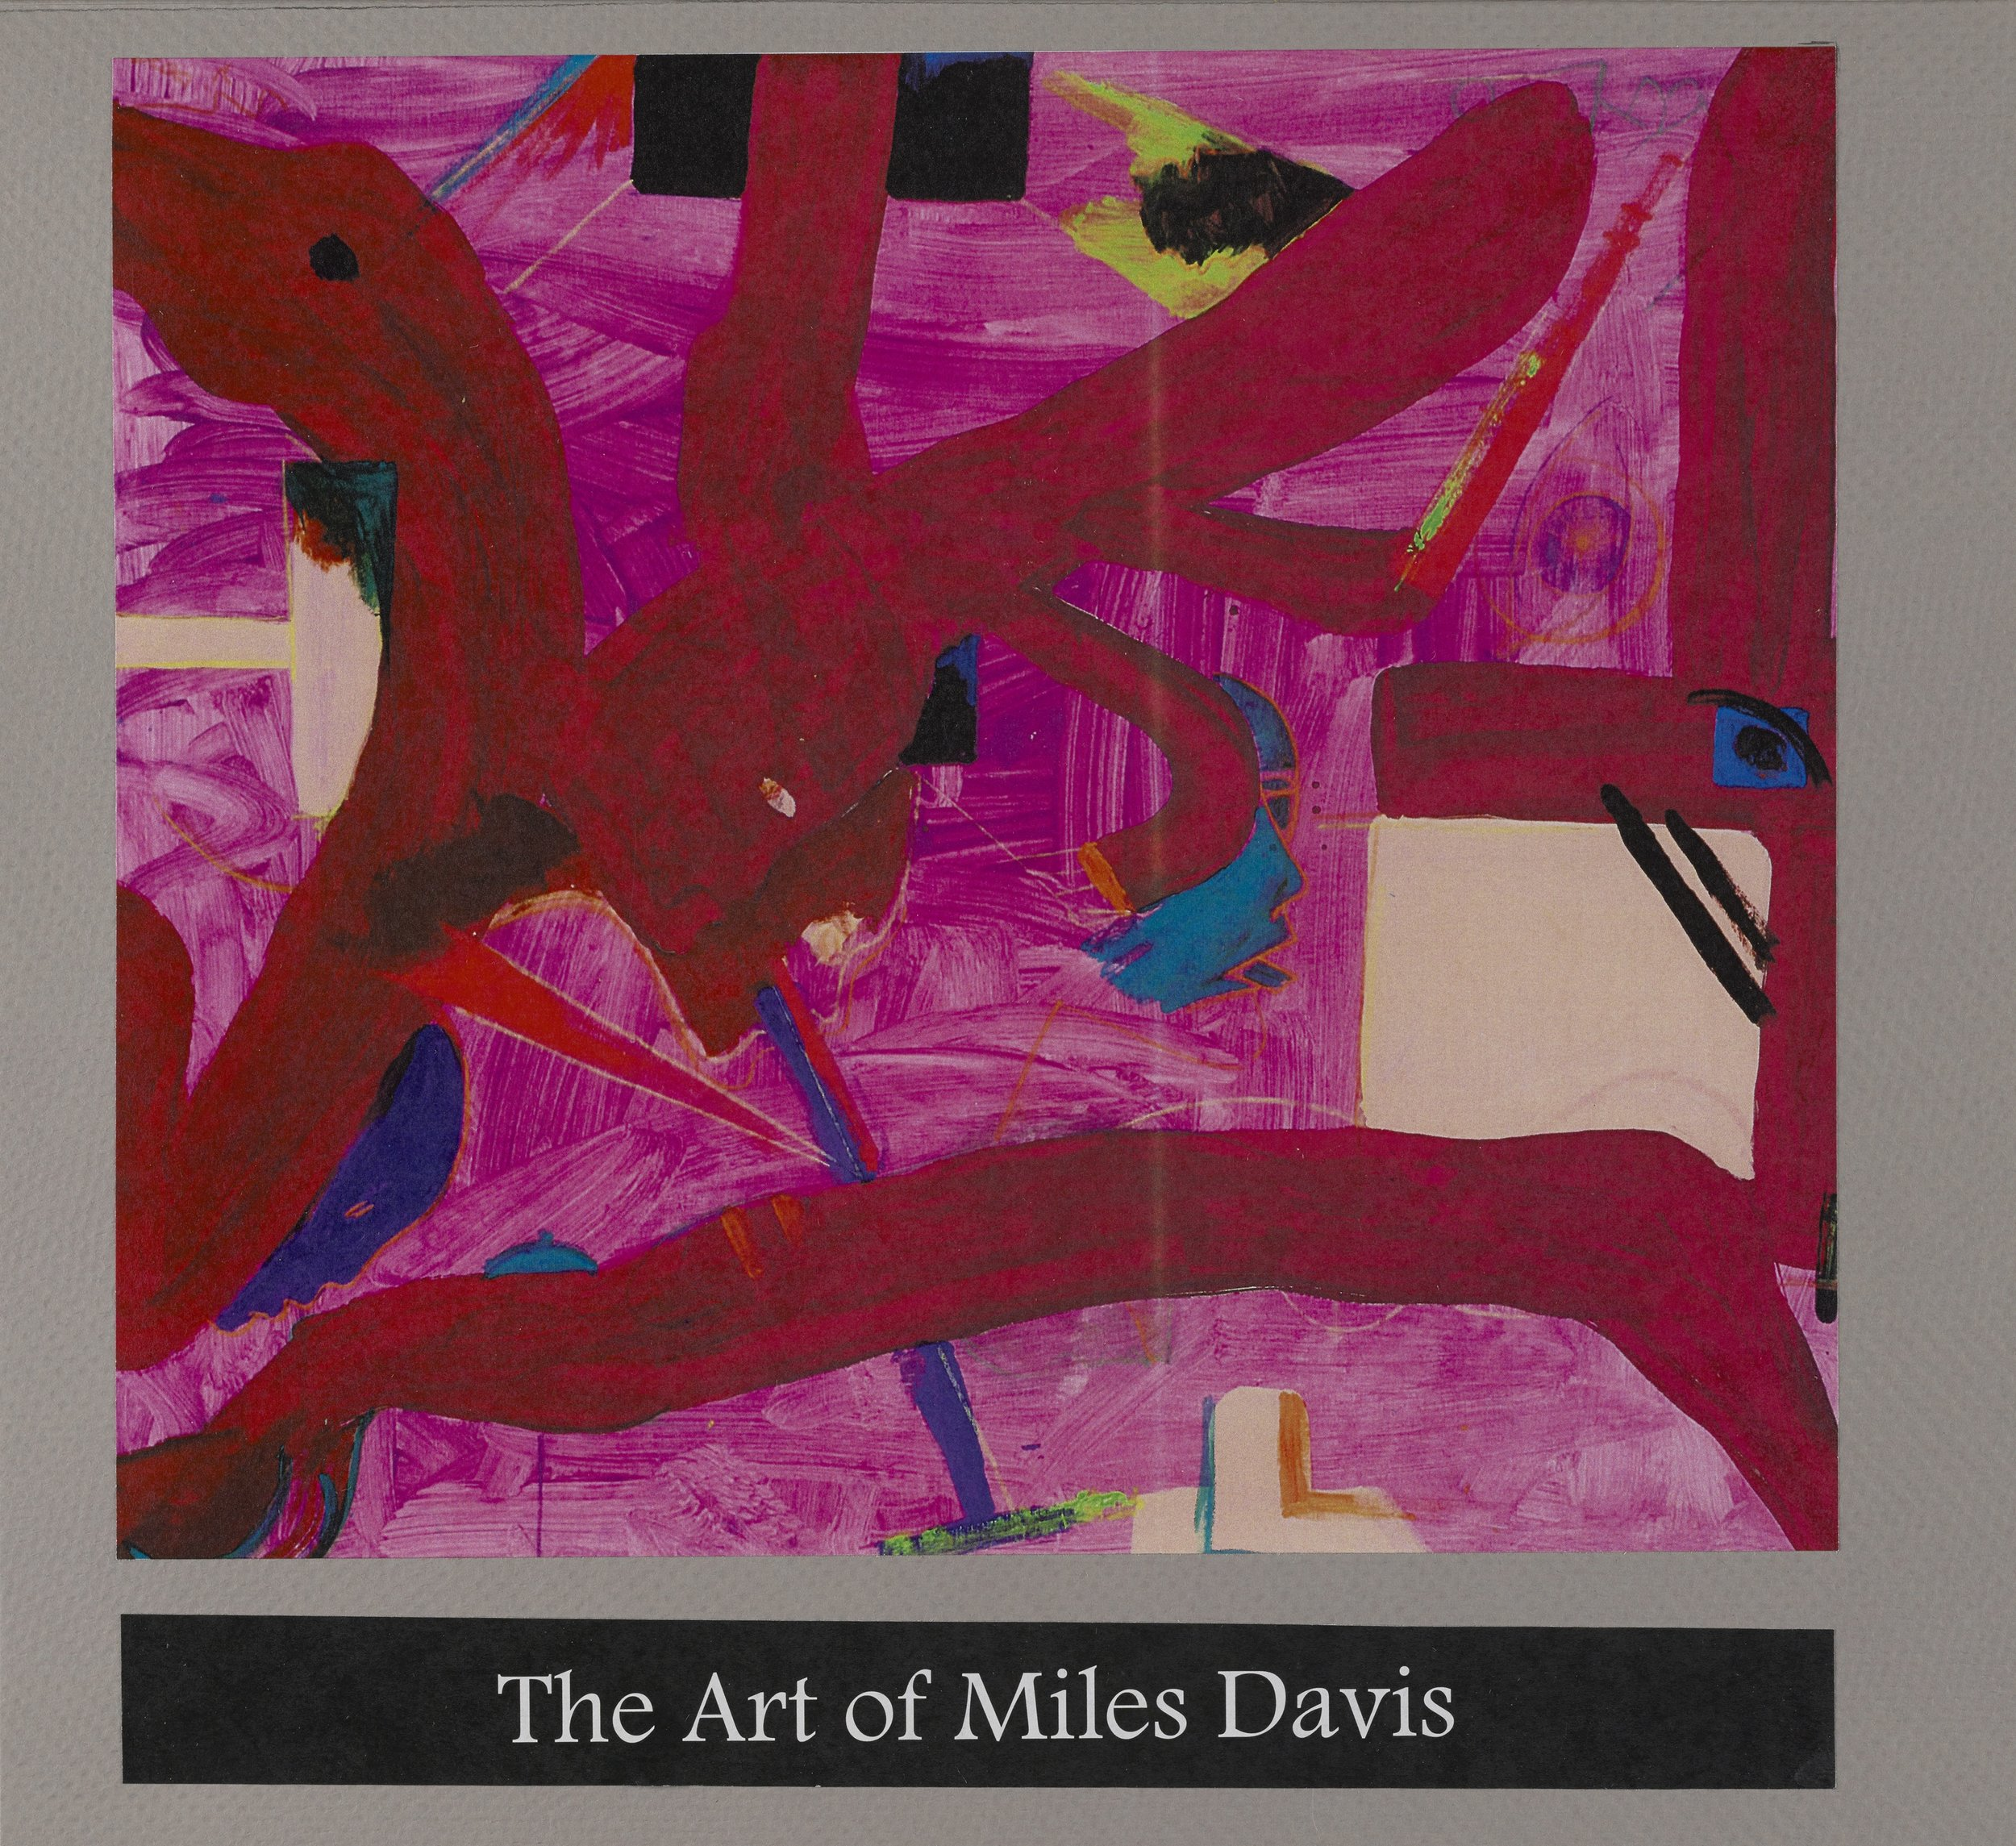 The Art of Miles Davis (insert), 2016